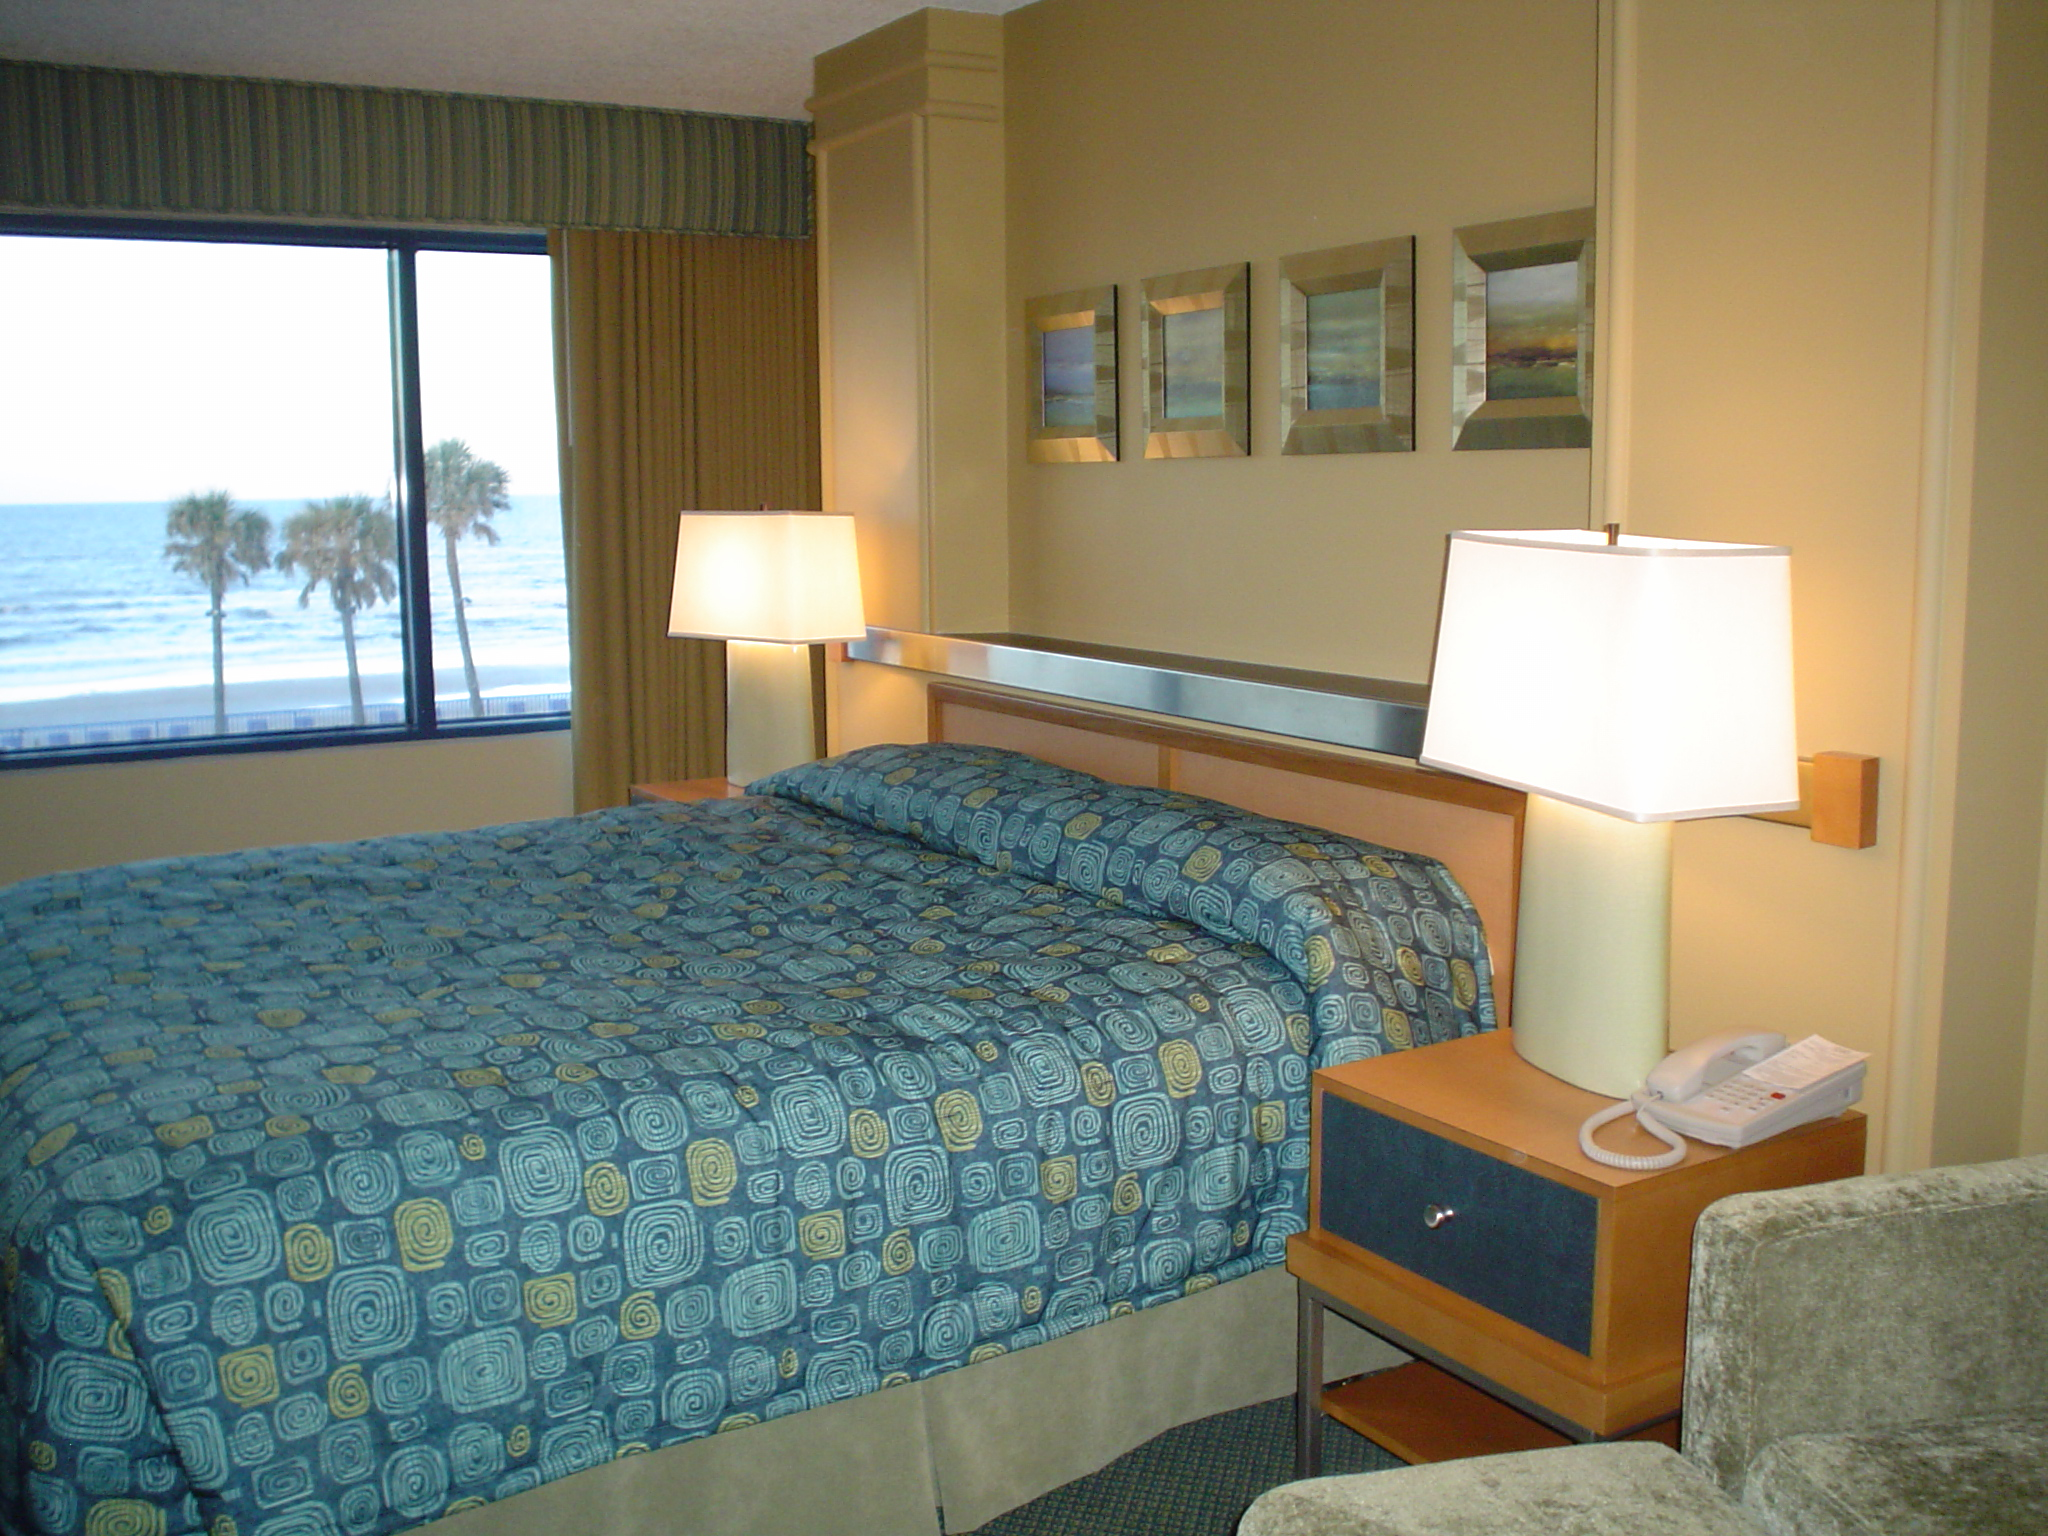 DSC04057 Daytona Beach RegencyGUEST ROOMS 1